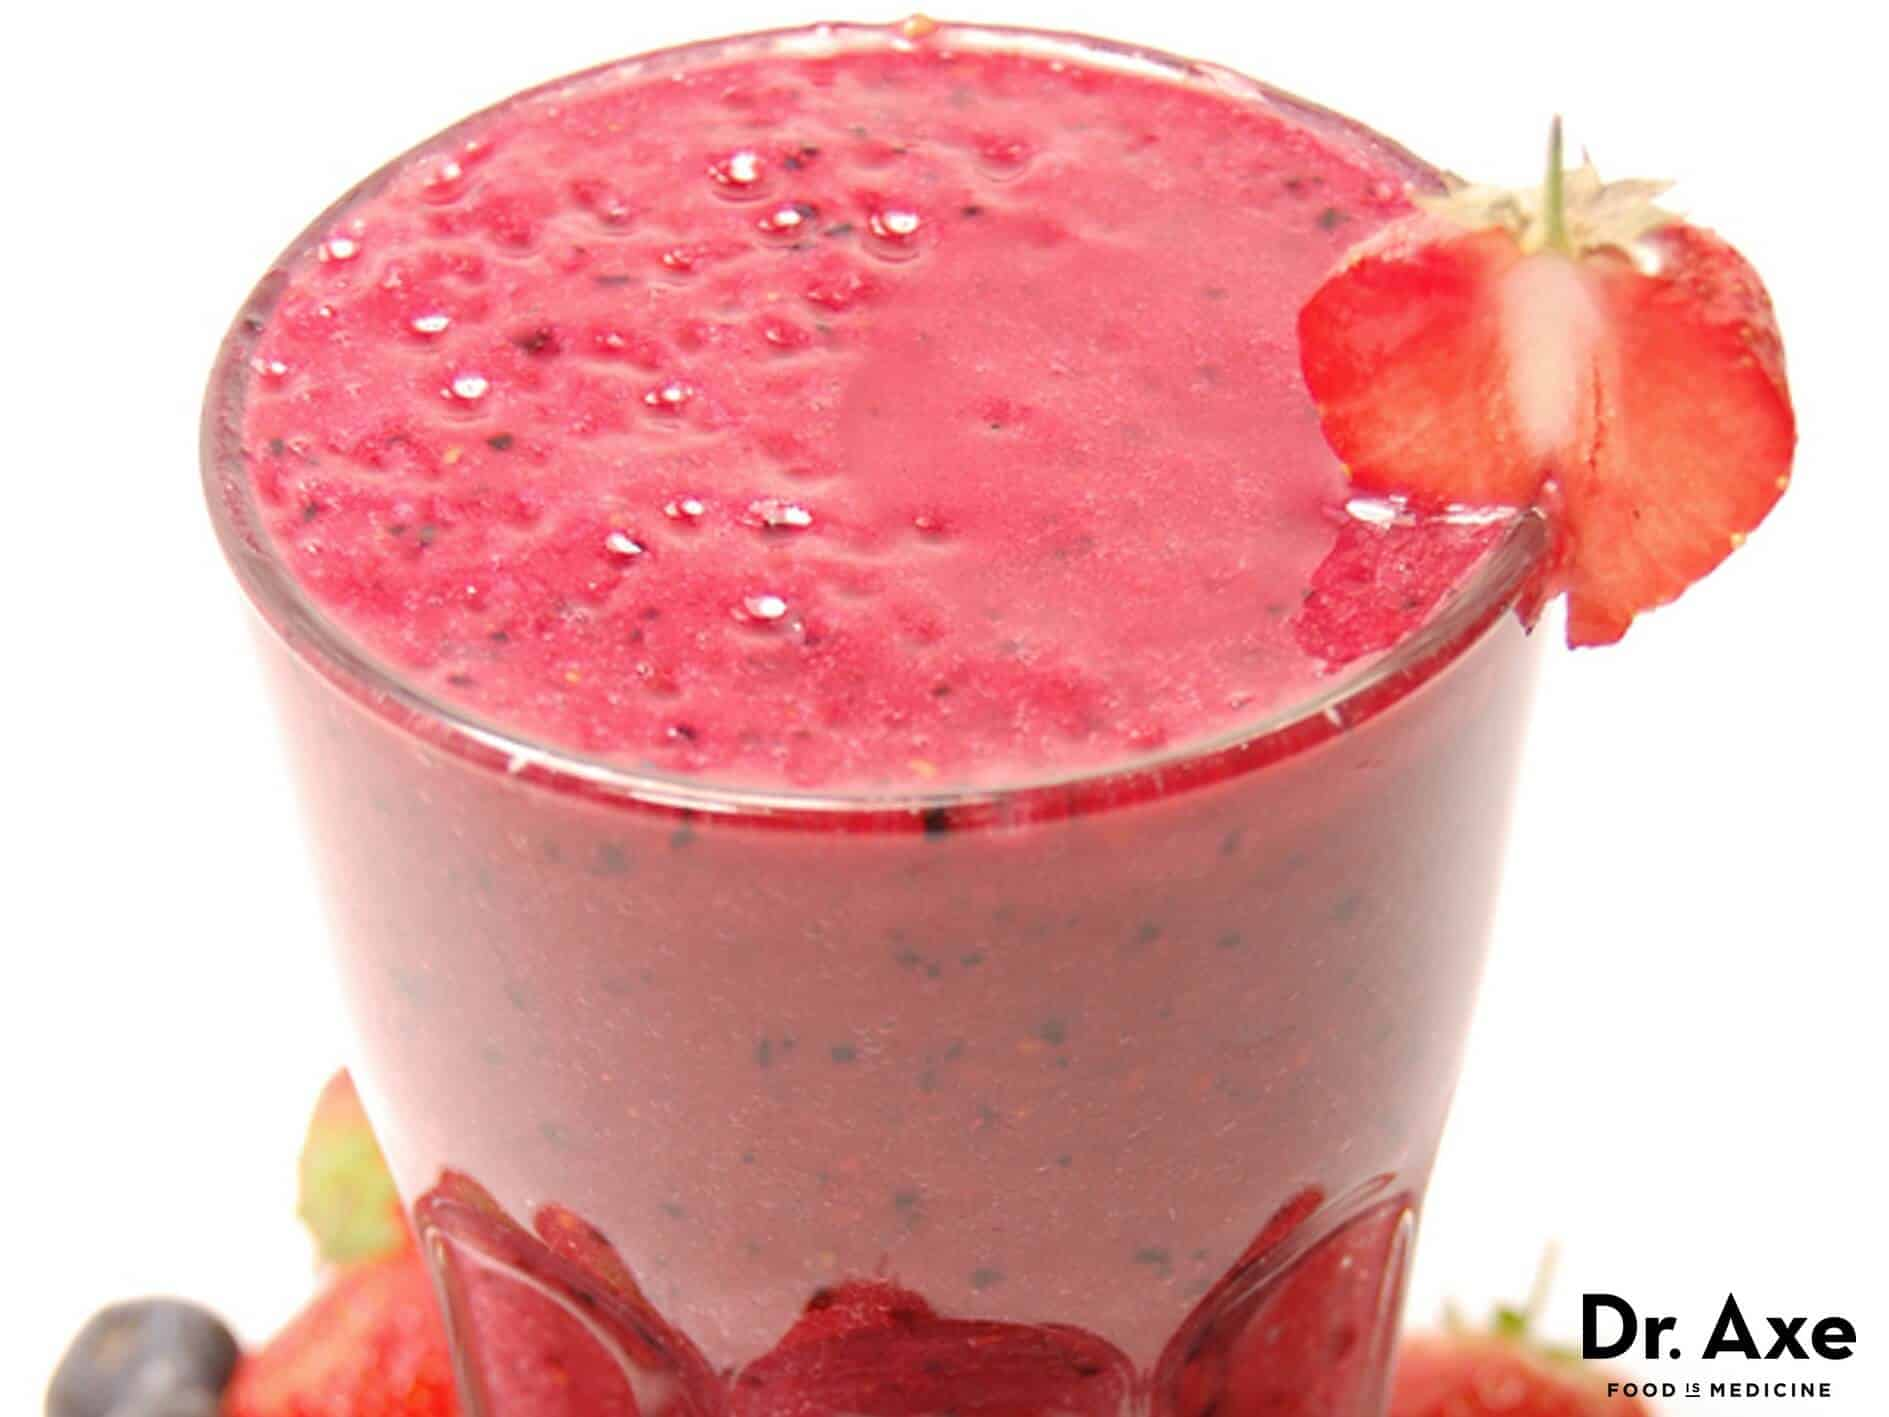 Berry protein smoothie recipe - Dr. Axe